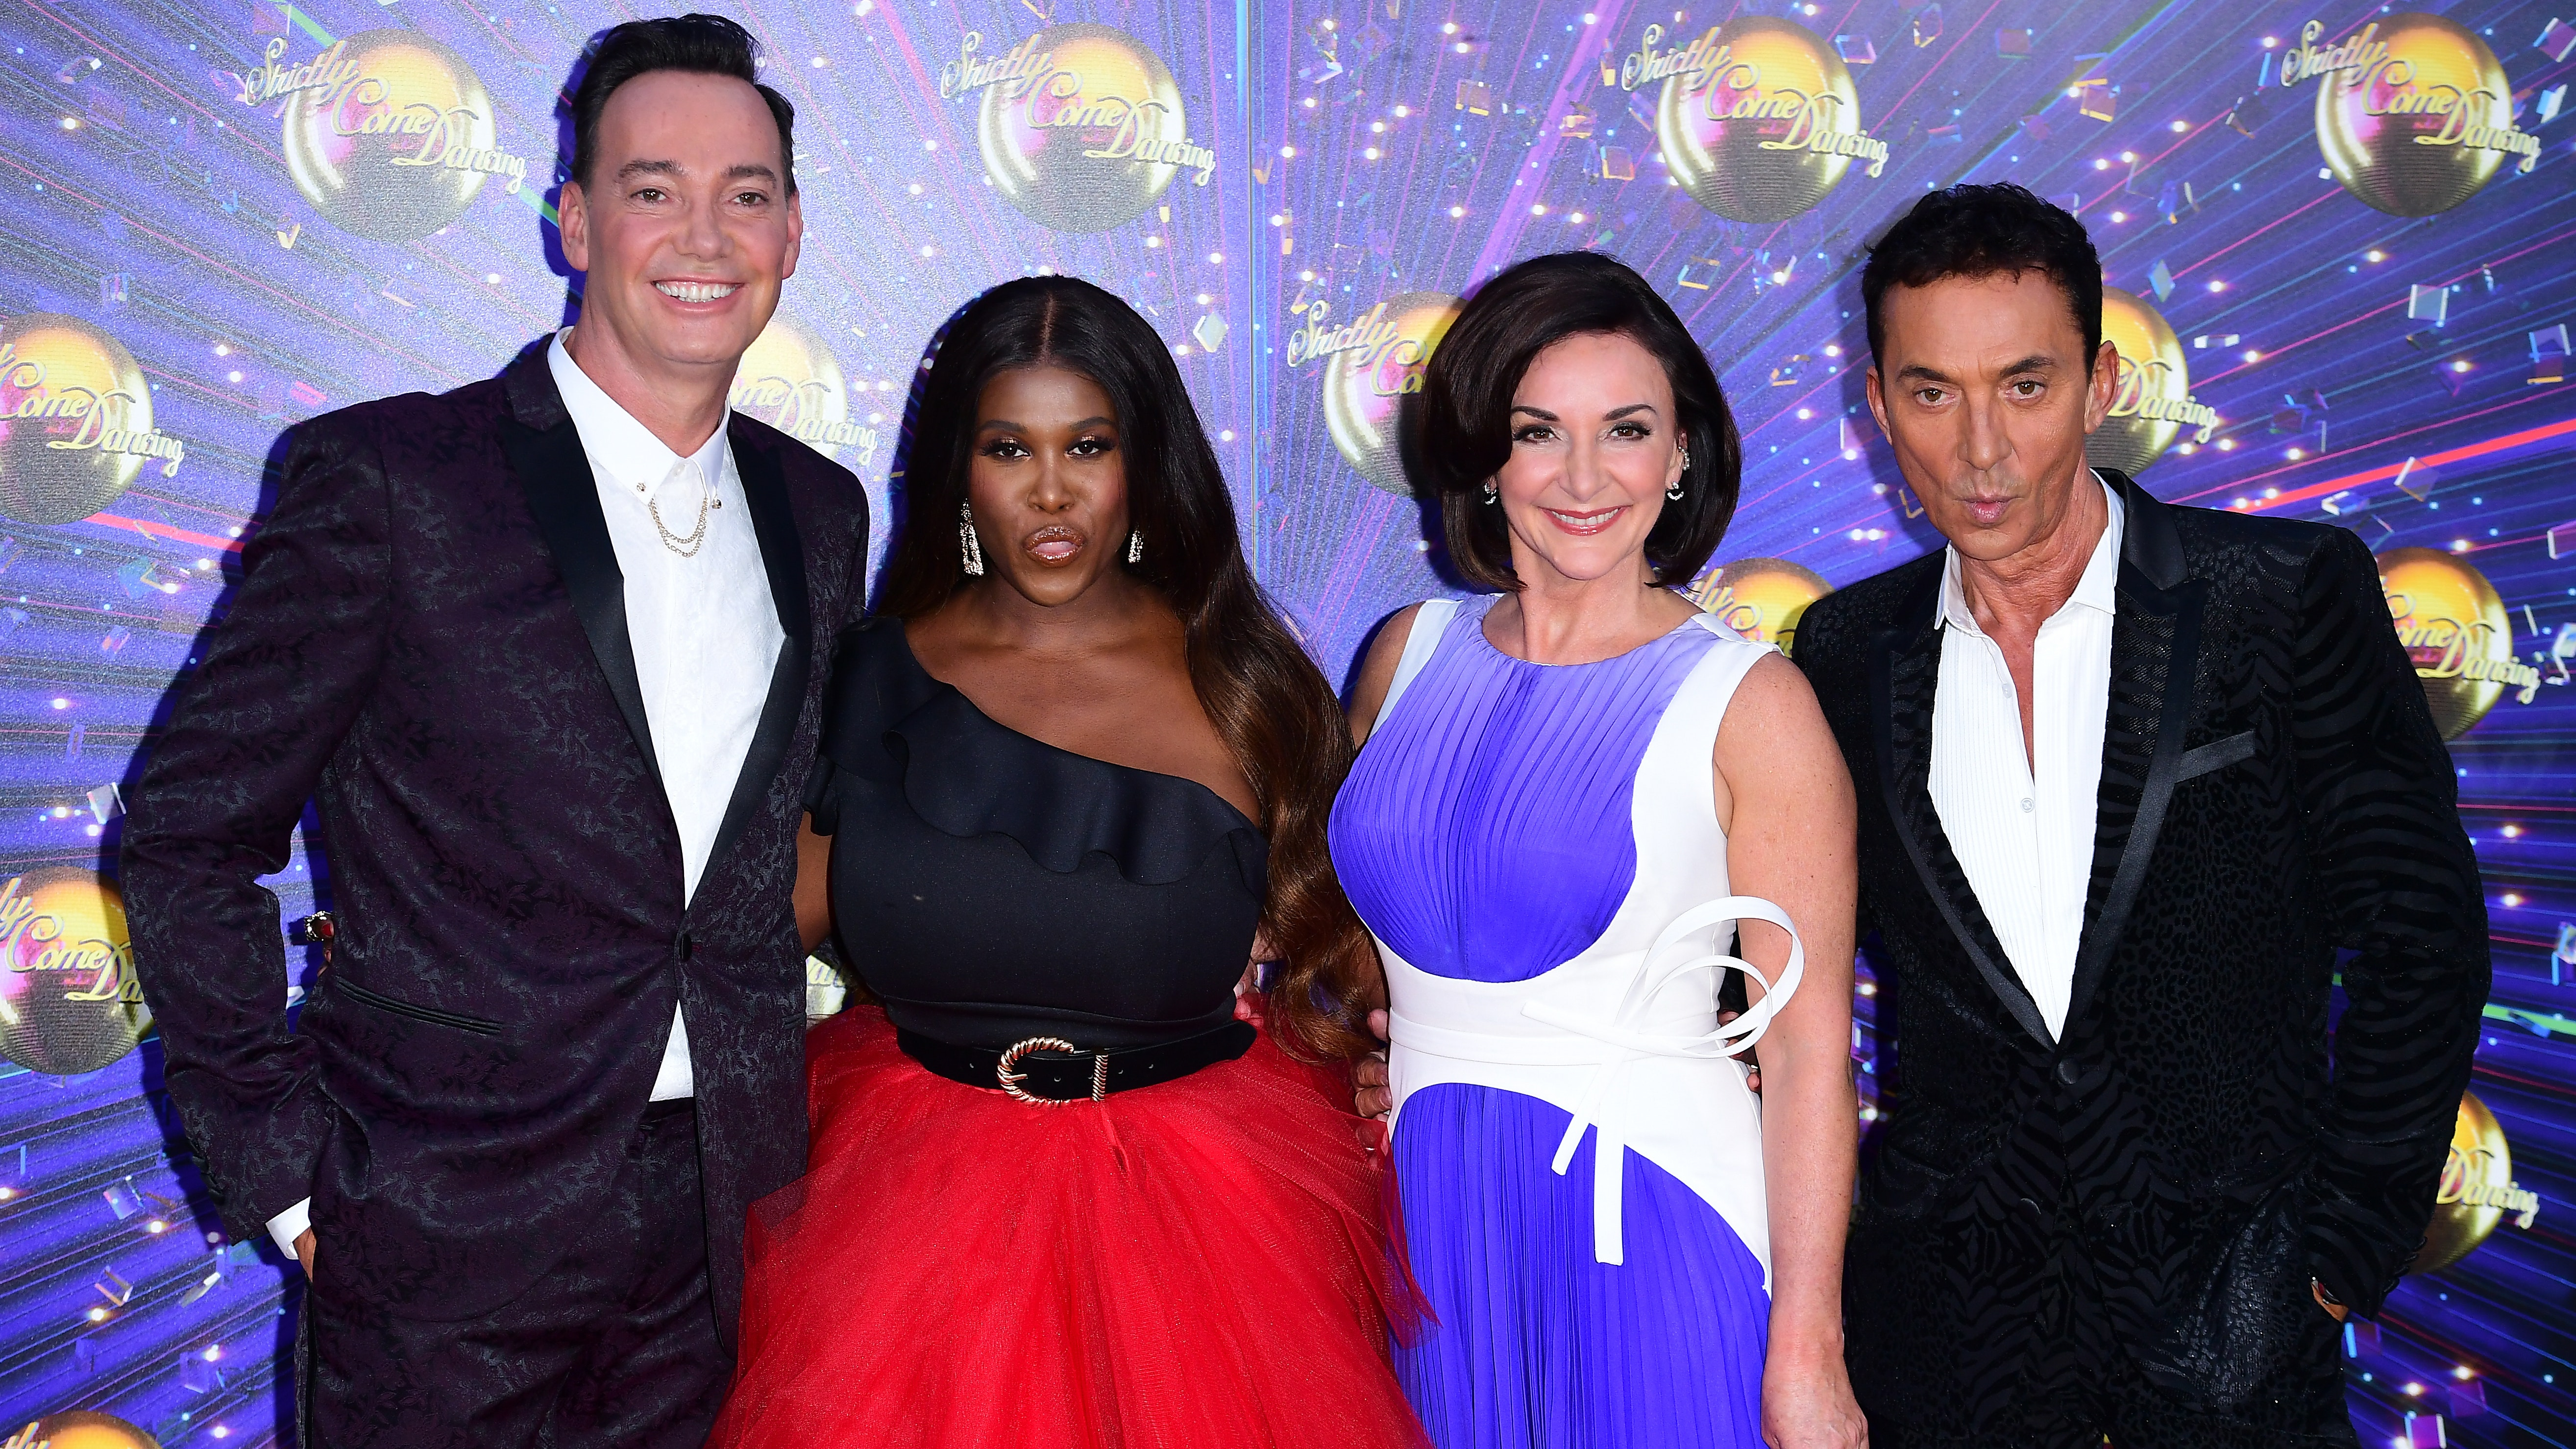 Strictly Come Dancing will FINALLY allow same-sex couples in 2020 series